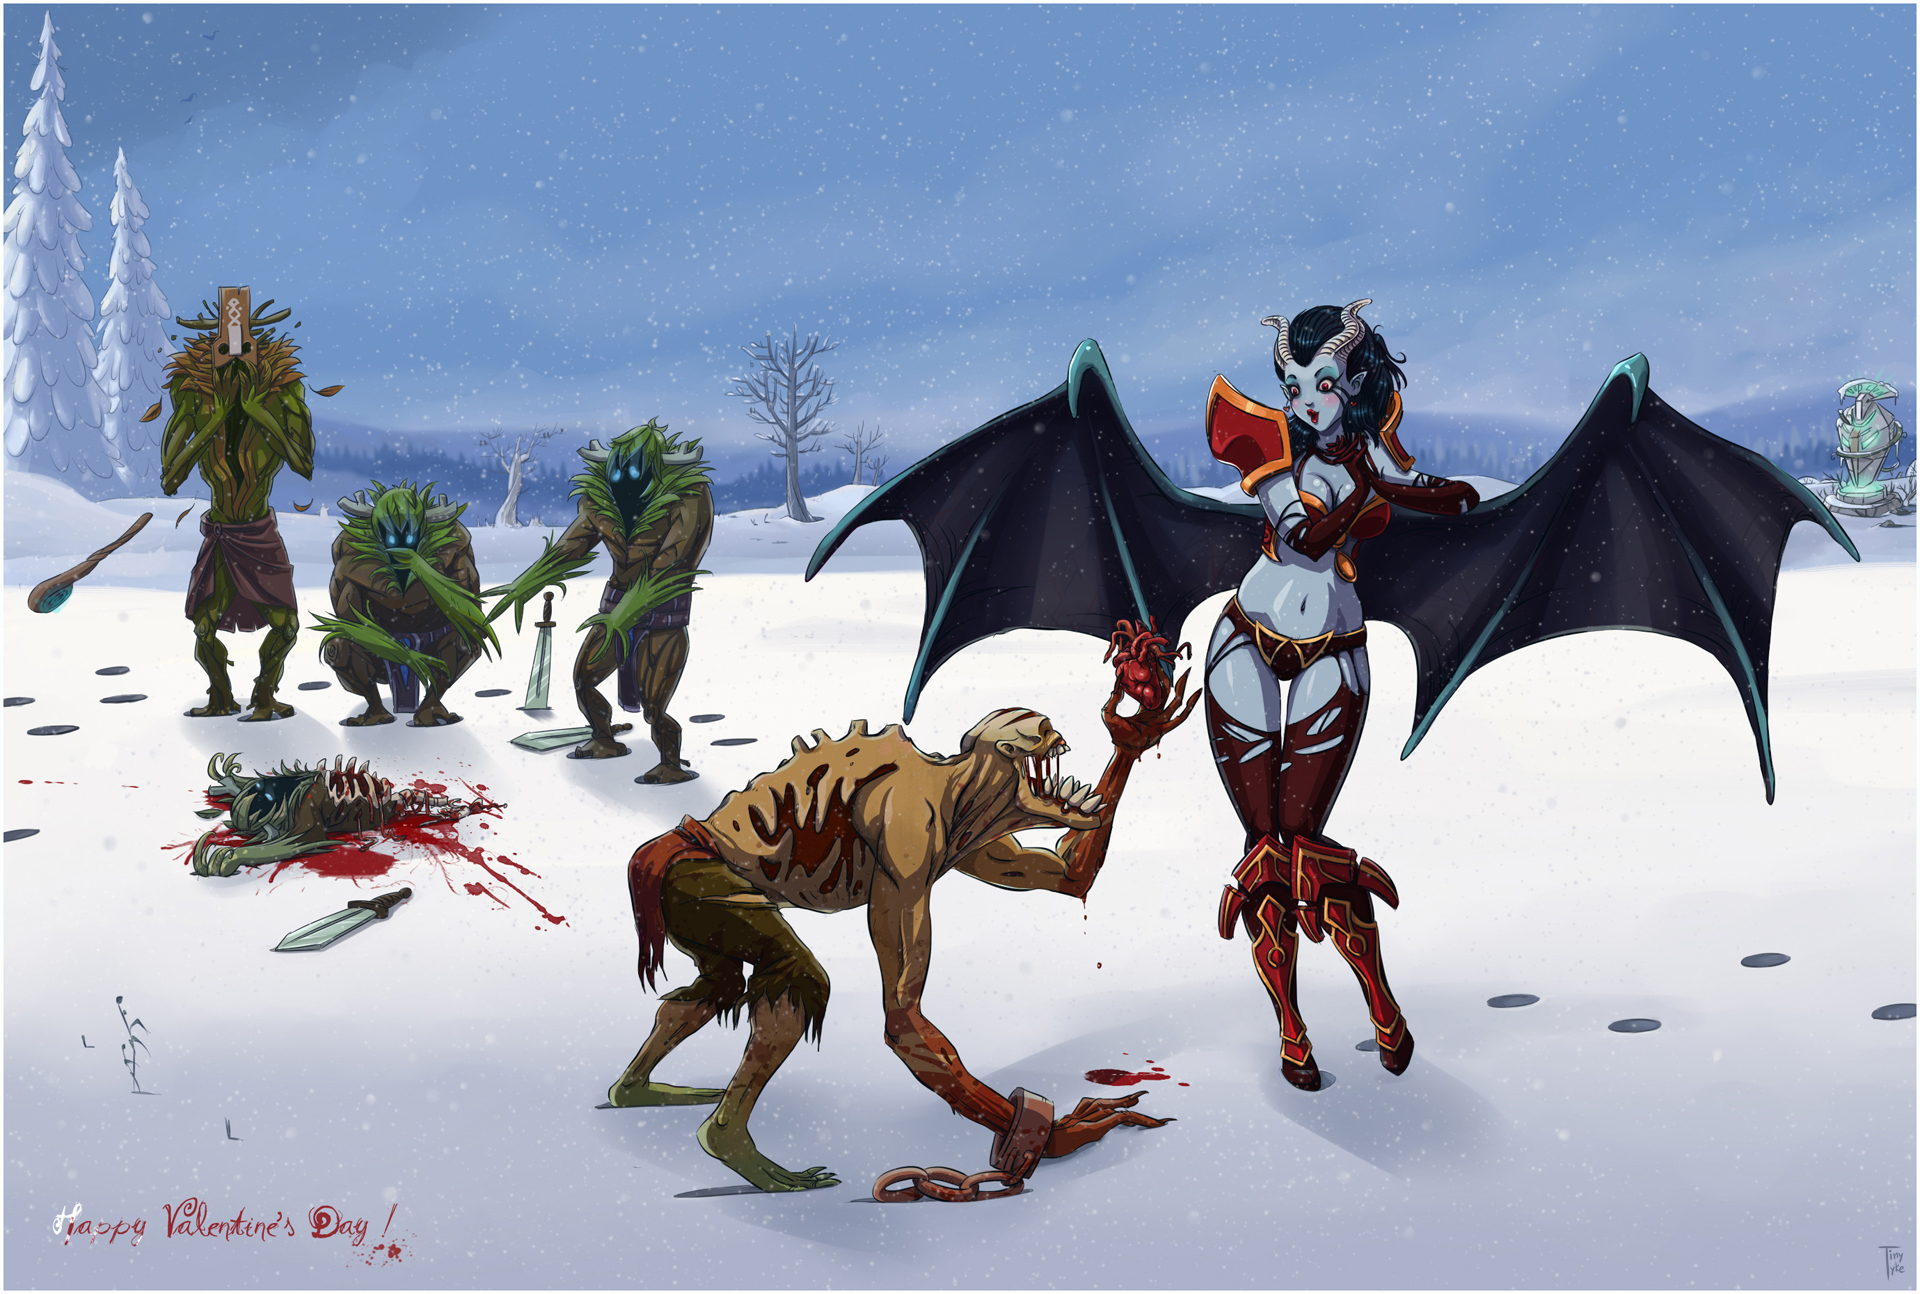 Dota Monster Snow Winter Heart Blood Valentine's Day dark fantasy demon girl sexy babes wings